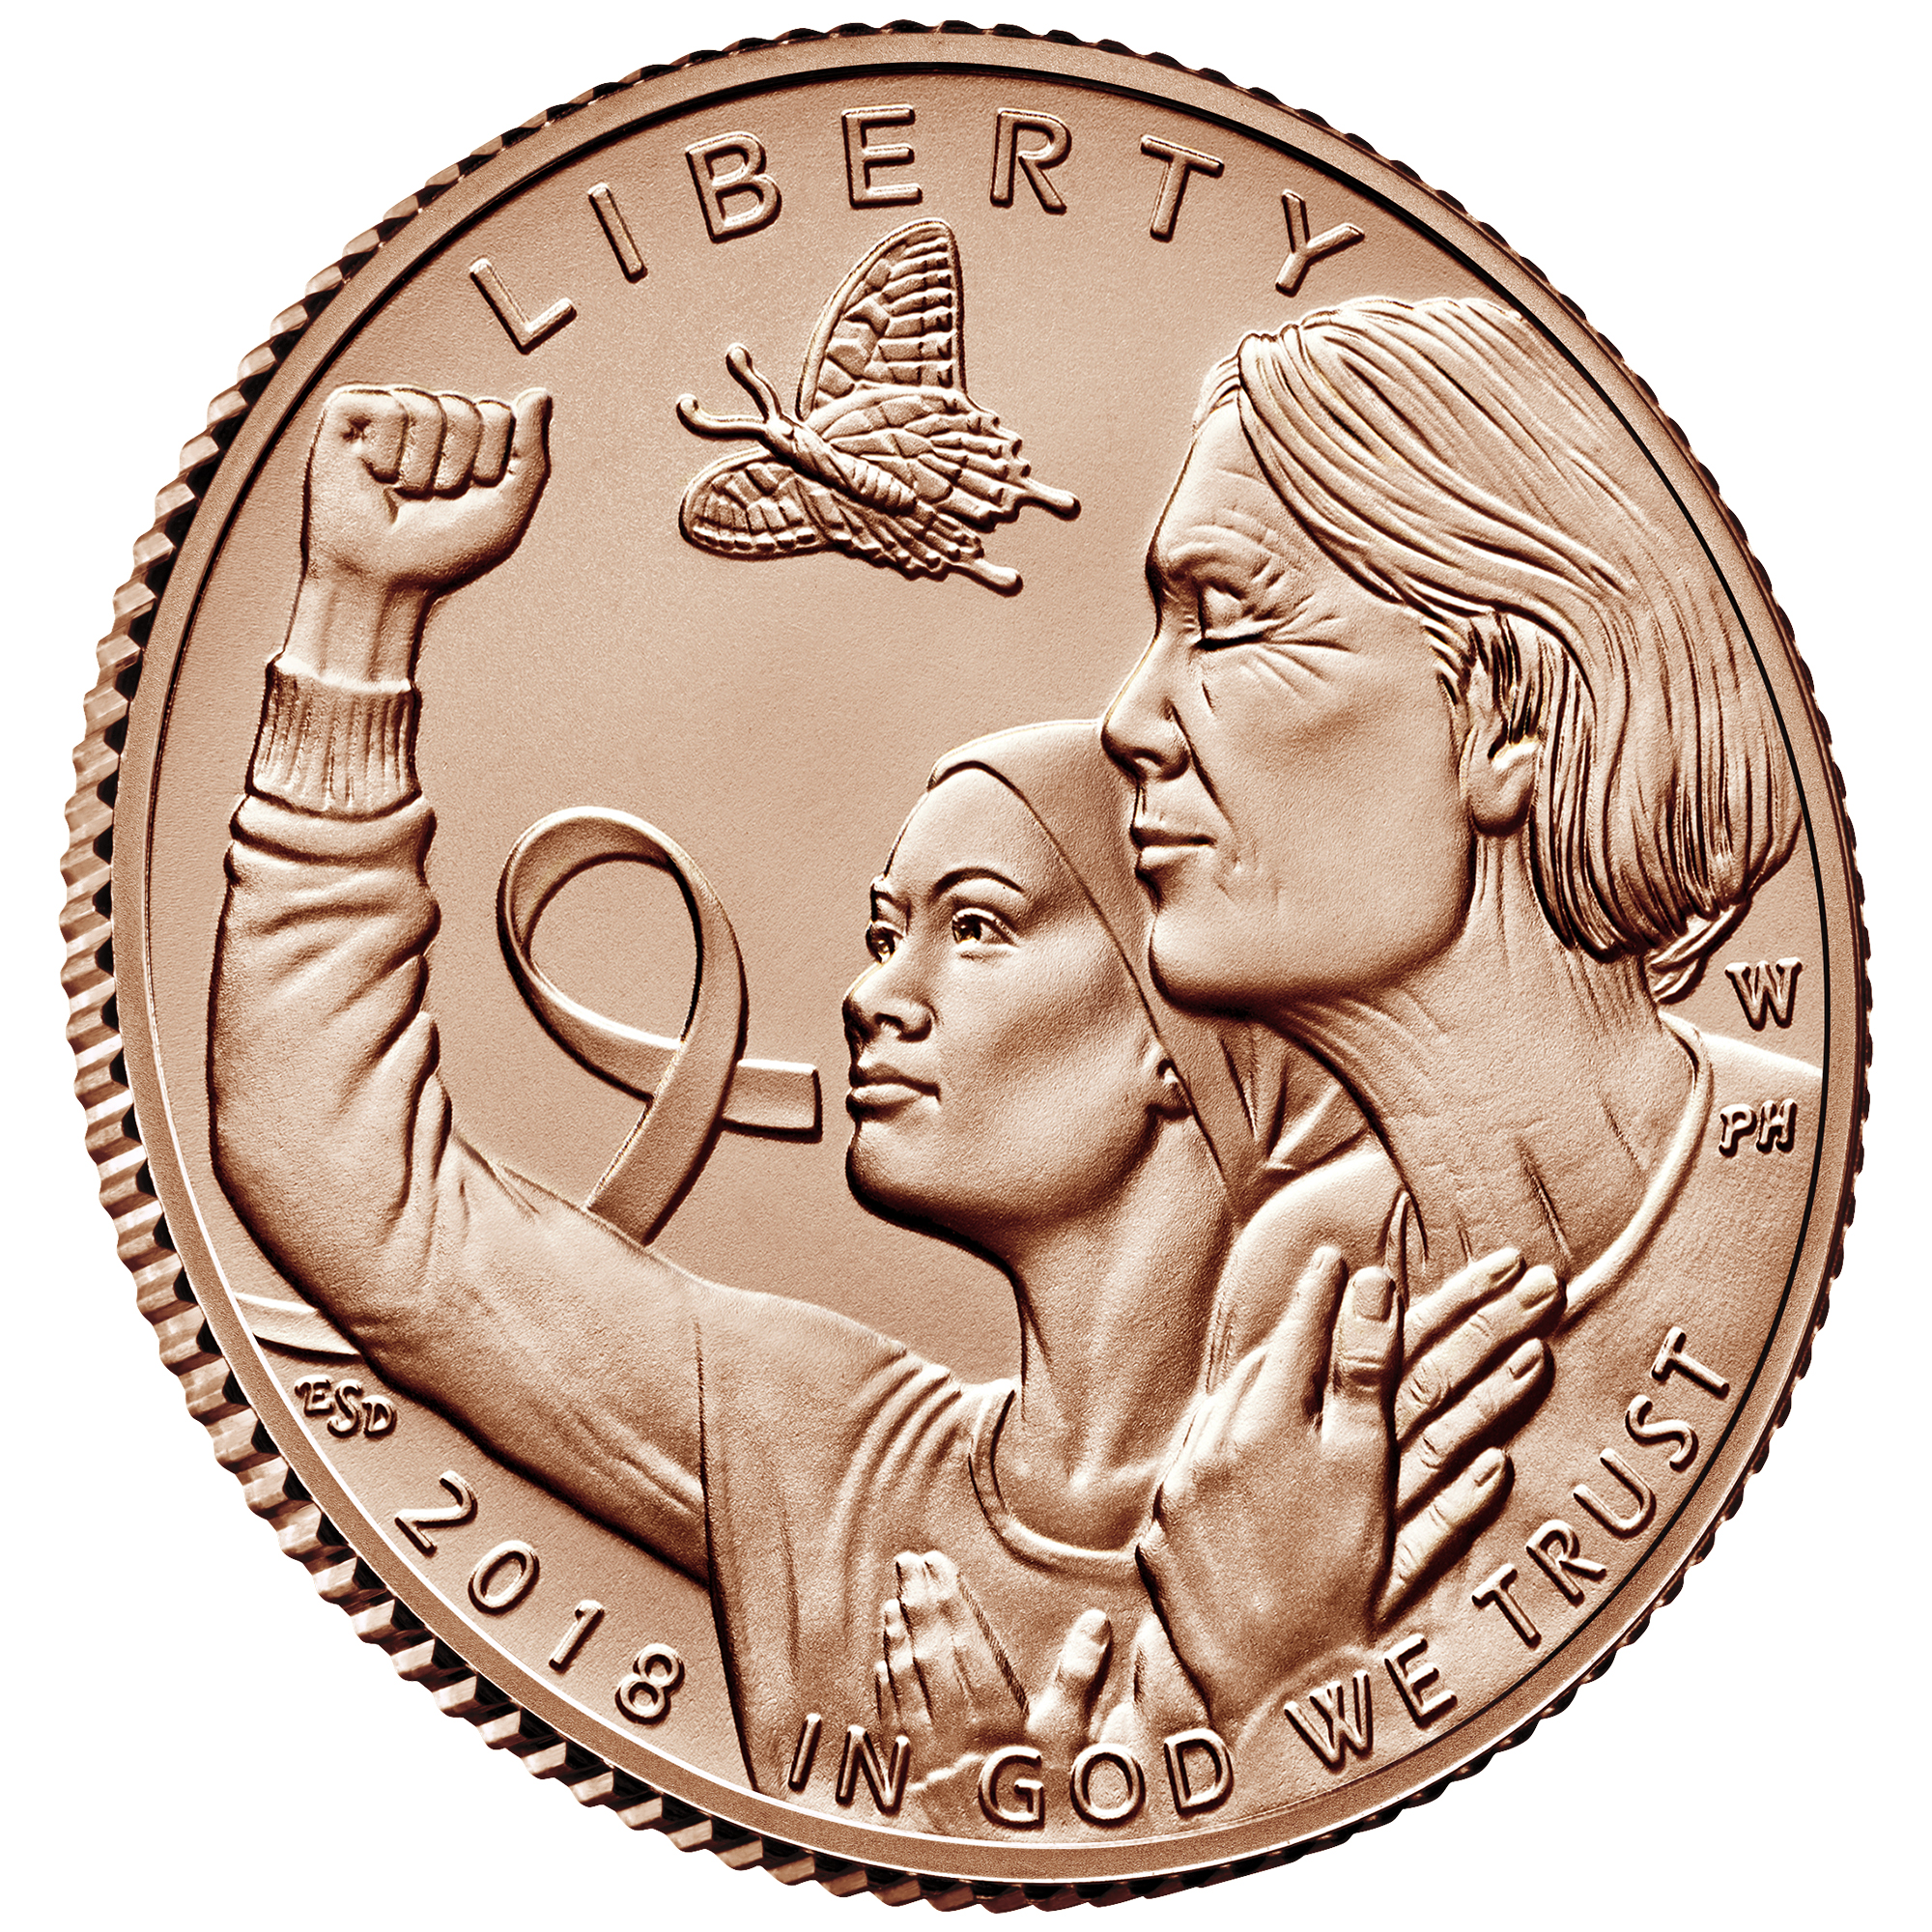 Breast Cancer Awareness Coin | U.S. Mint